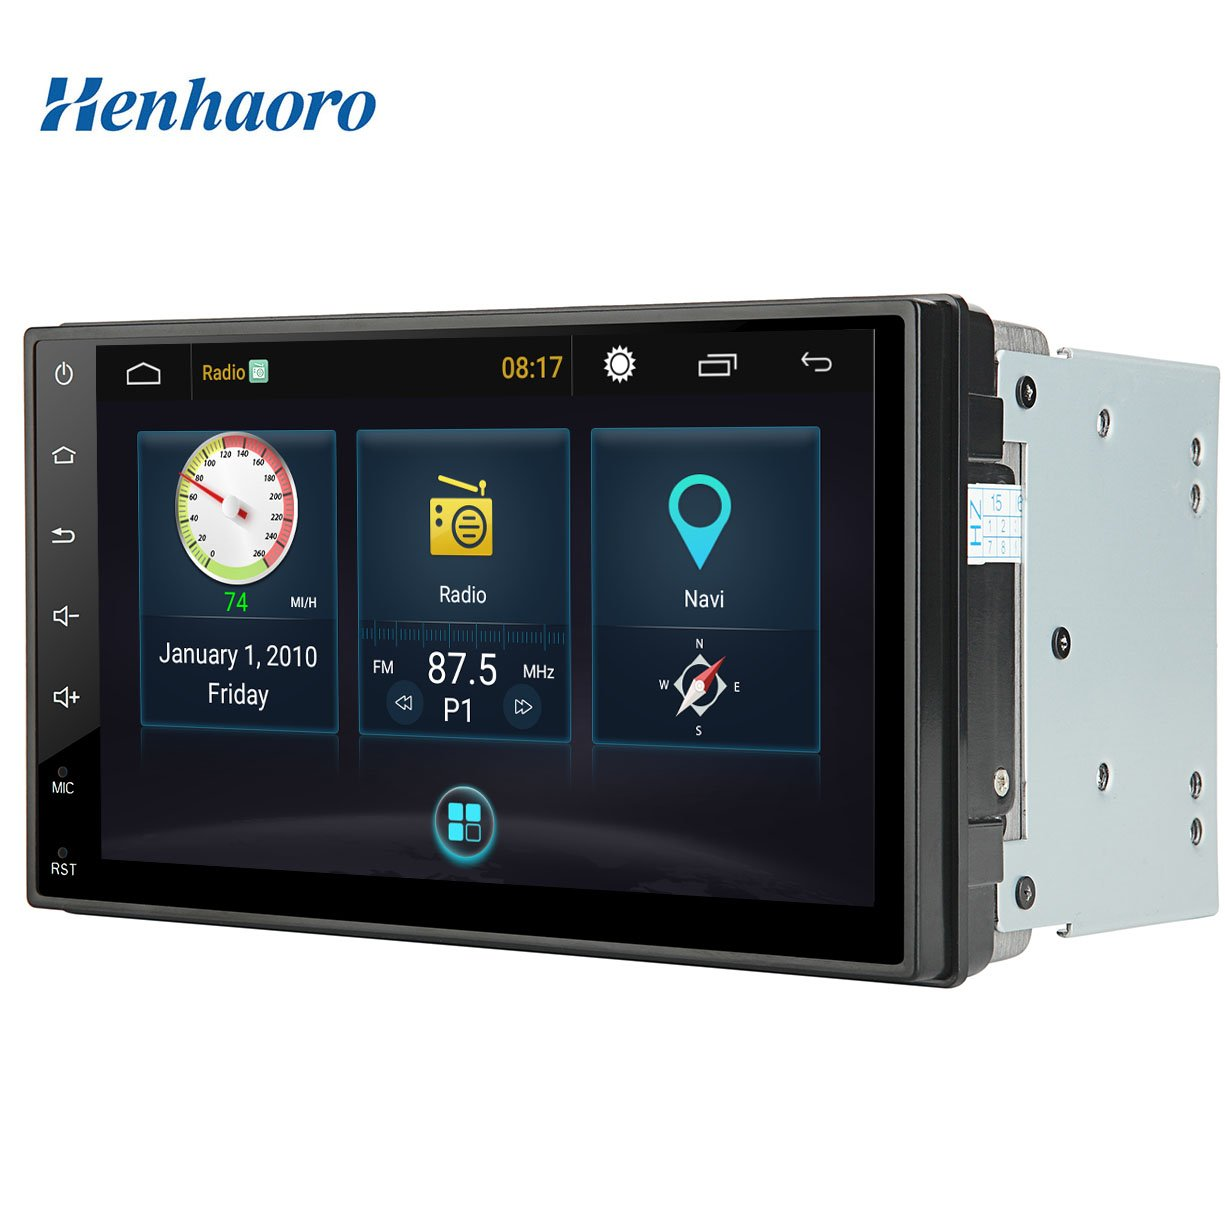 Henhaoro 7'' Android Car Stereo Gps Navigation Touch Screen Radio Receiver No DVD 2 Din Resolution 1024x600 Head Unit (2018 Brand New Version) by Henhaoro